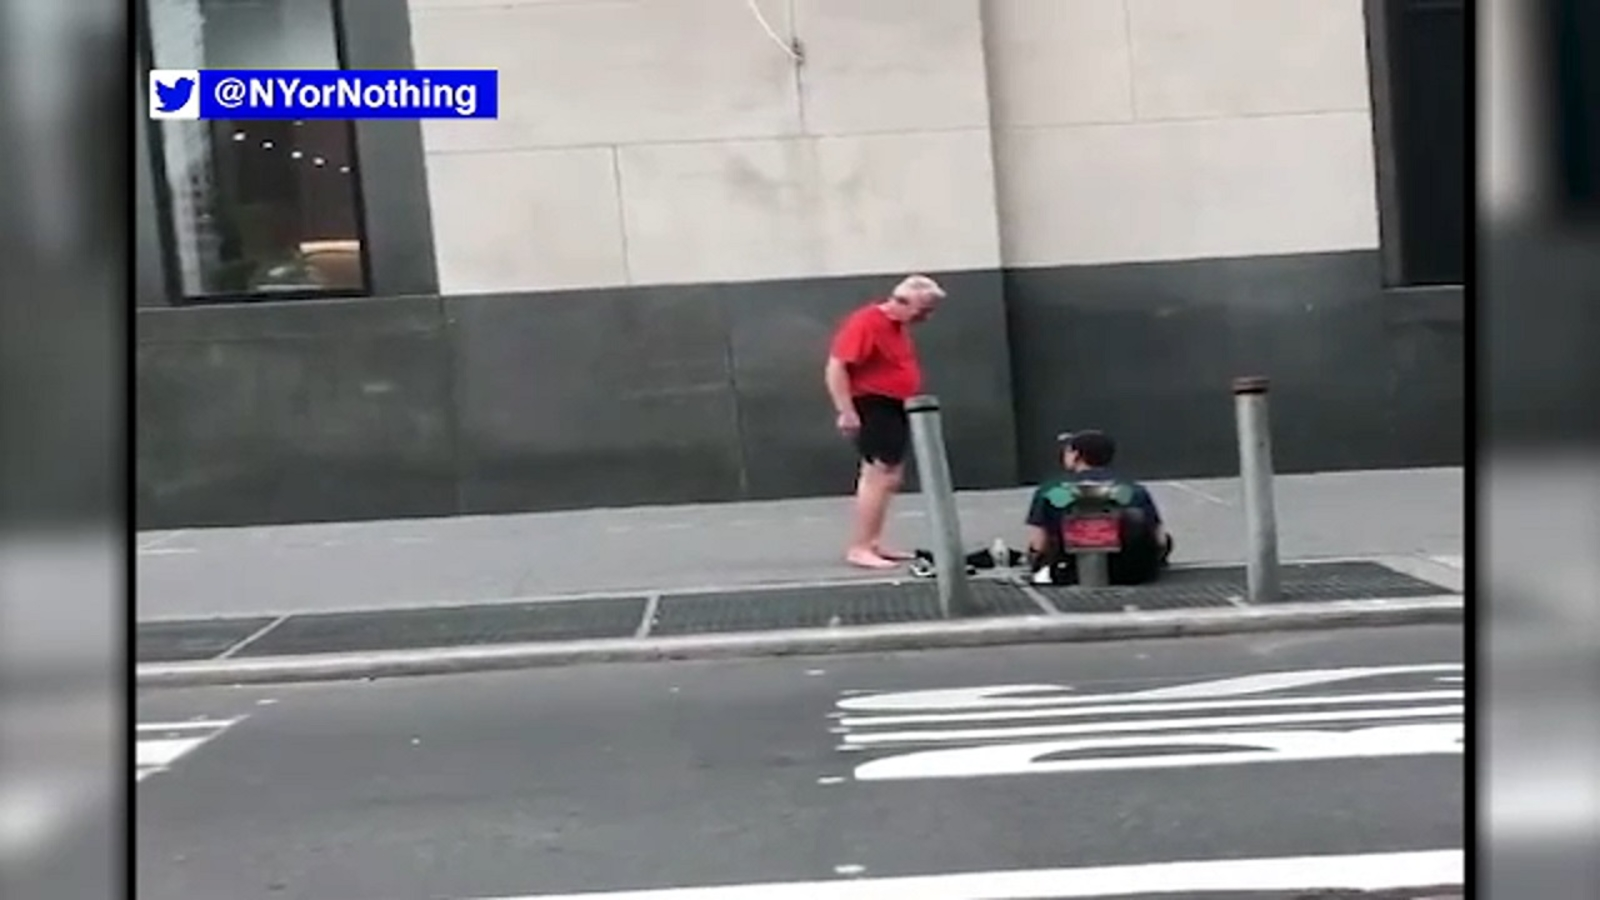 Be Kind: Jogger gives homeless man shoes off his feet in Lower Manhattan